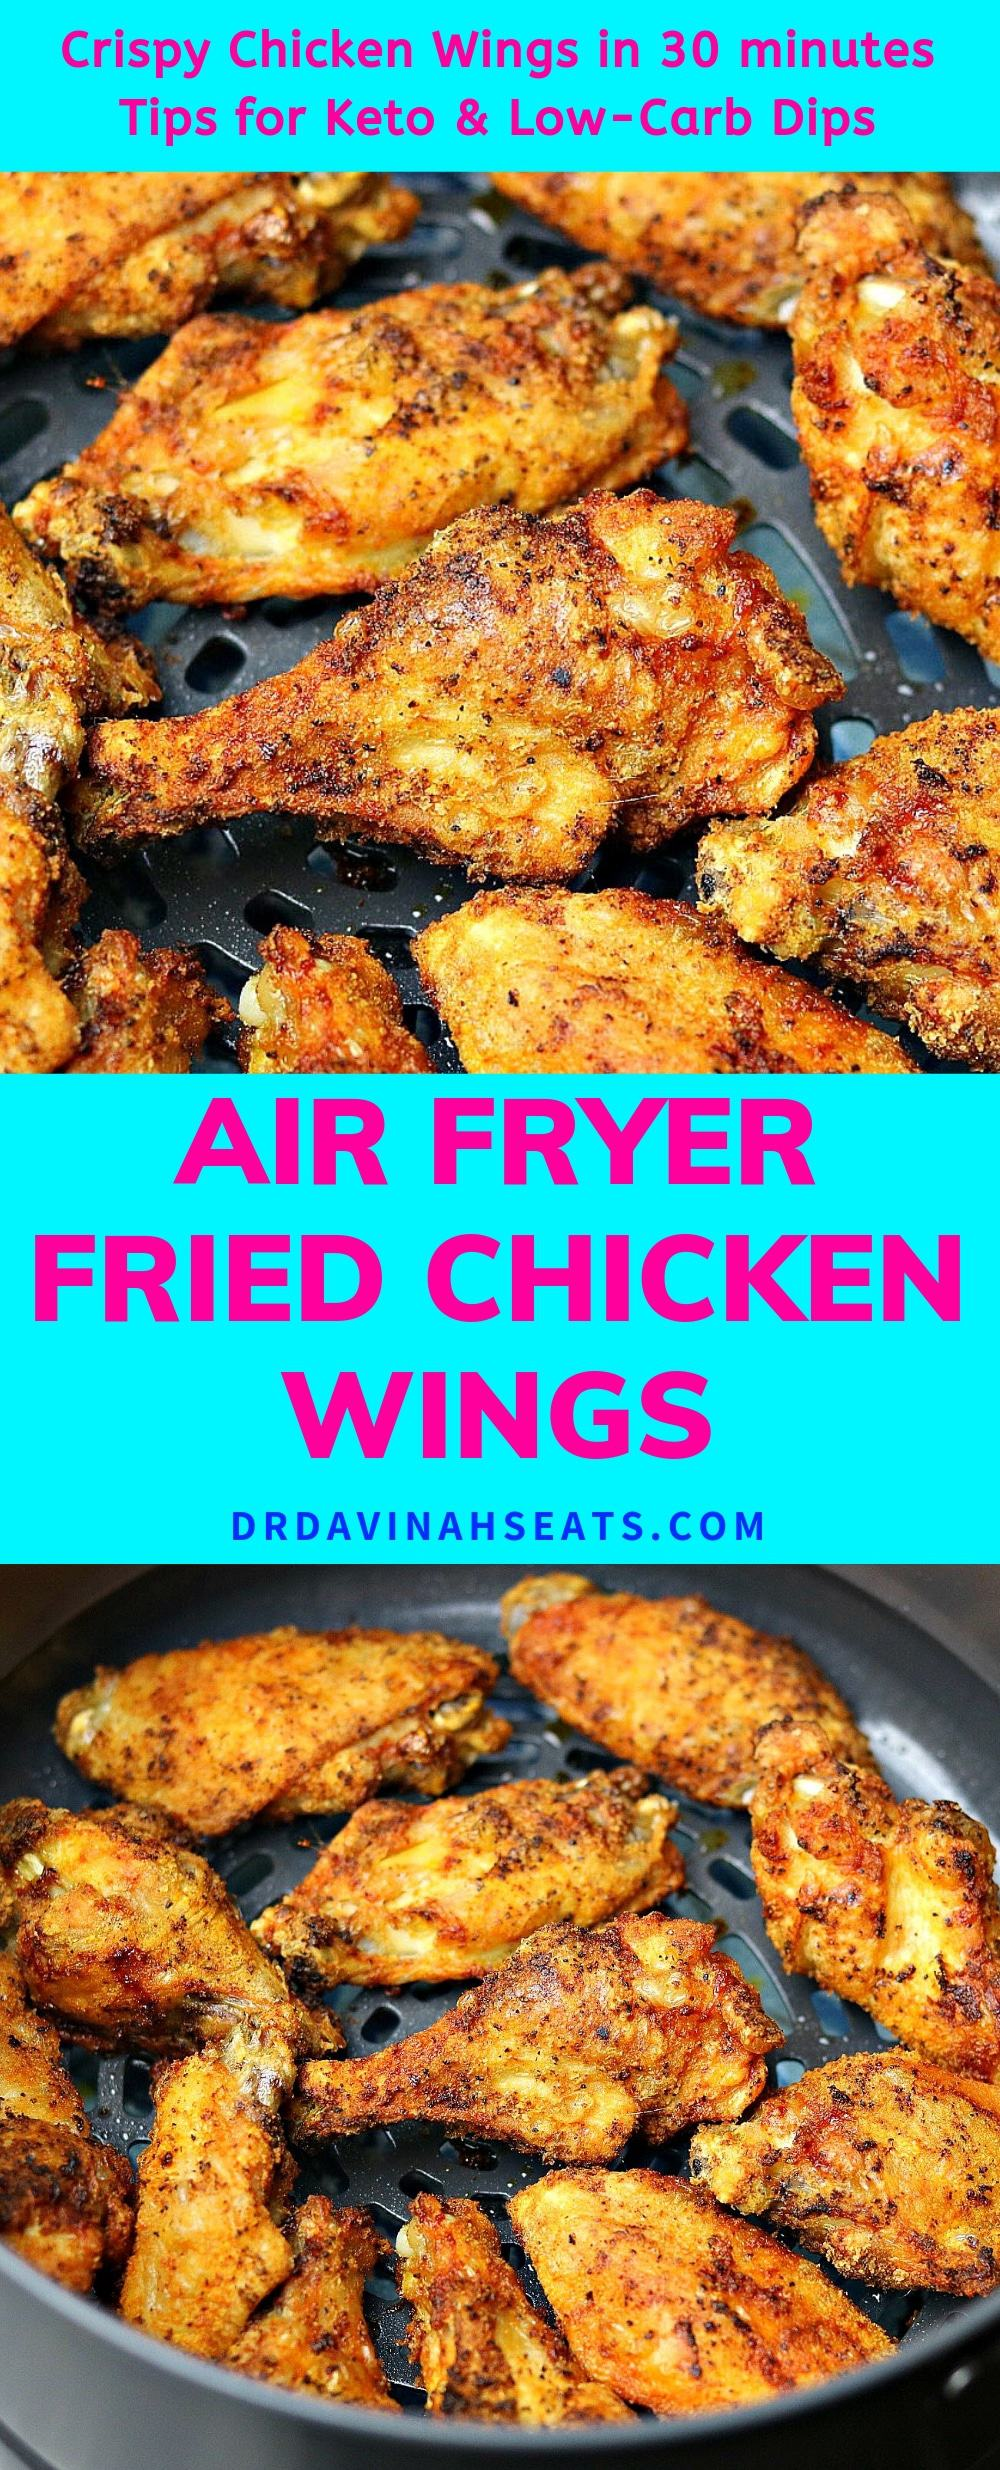 Pinterest Image for Air Fried Chicken recipe